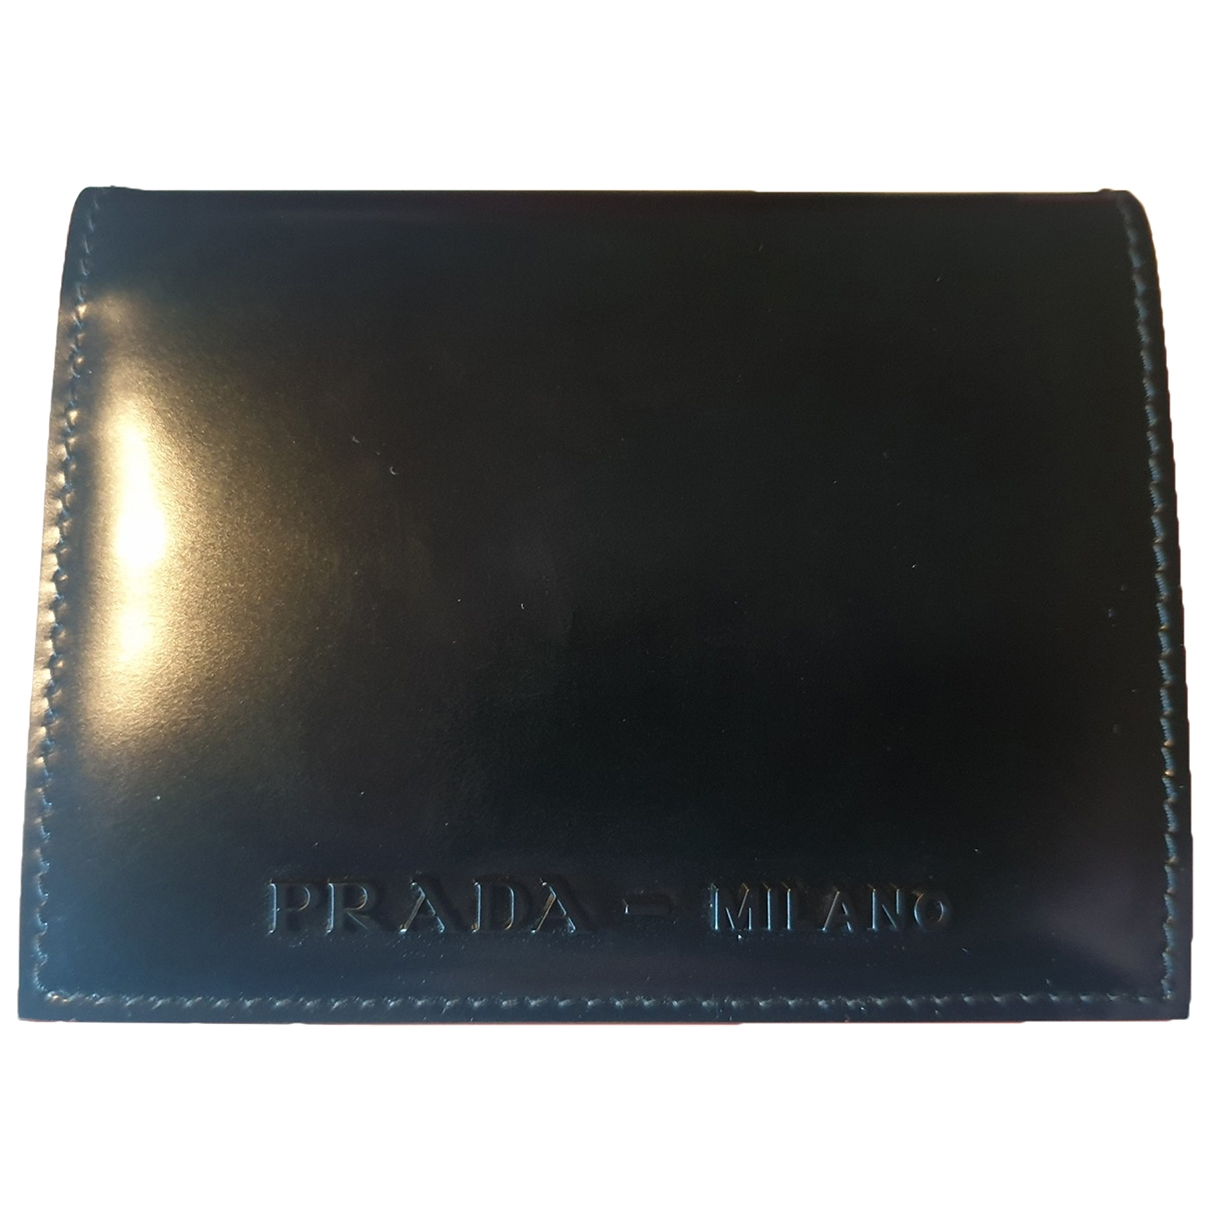 Prada \N Black Leather wallet for Women \N